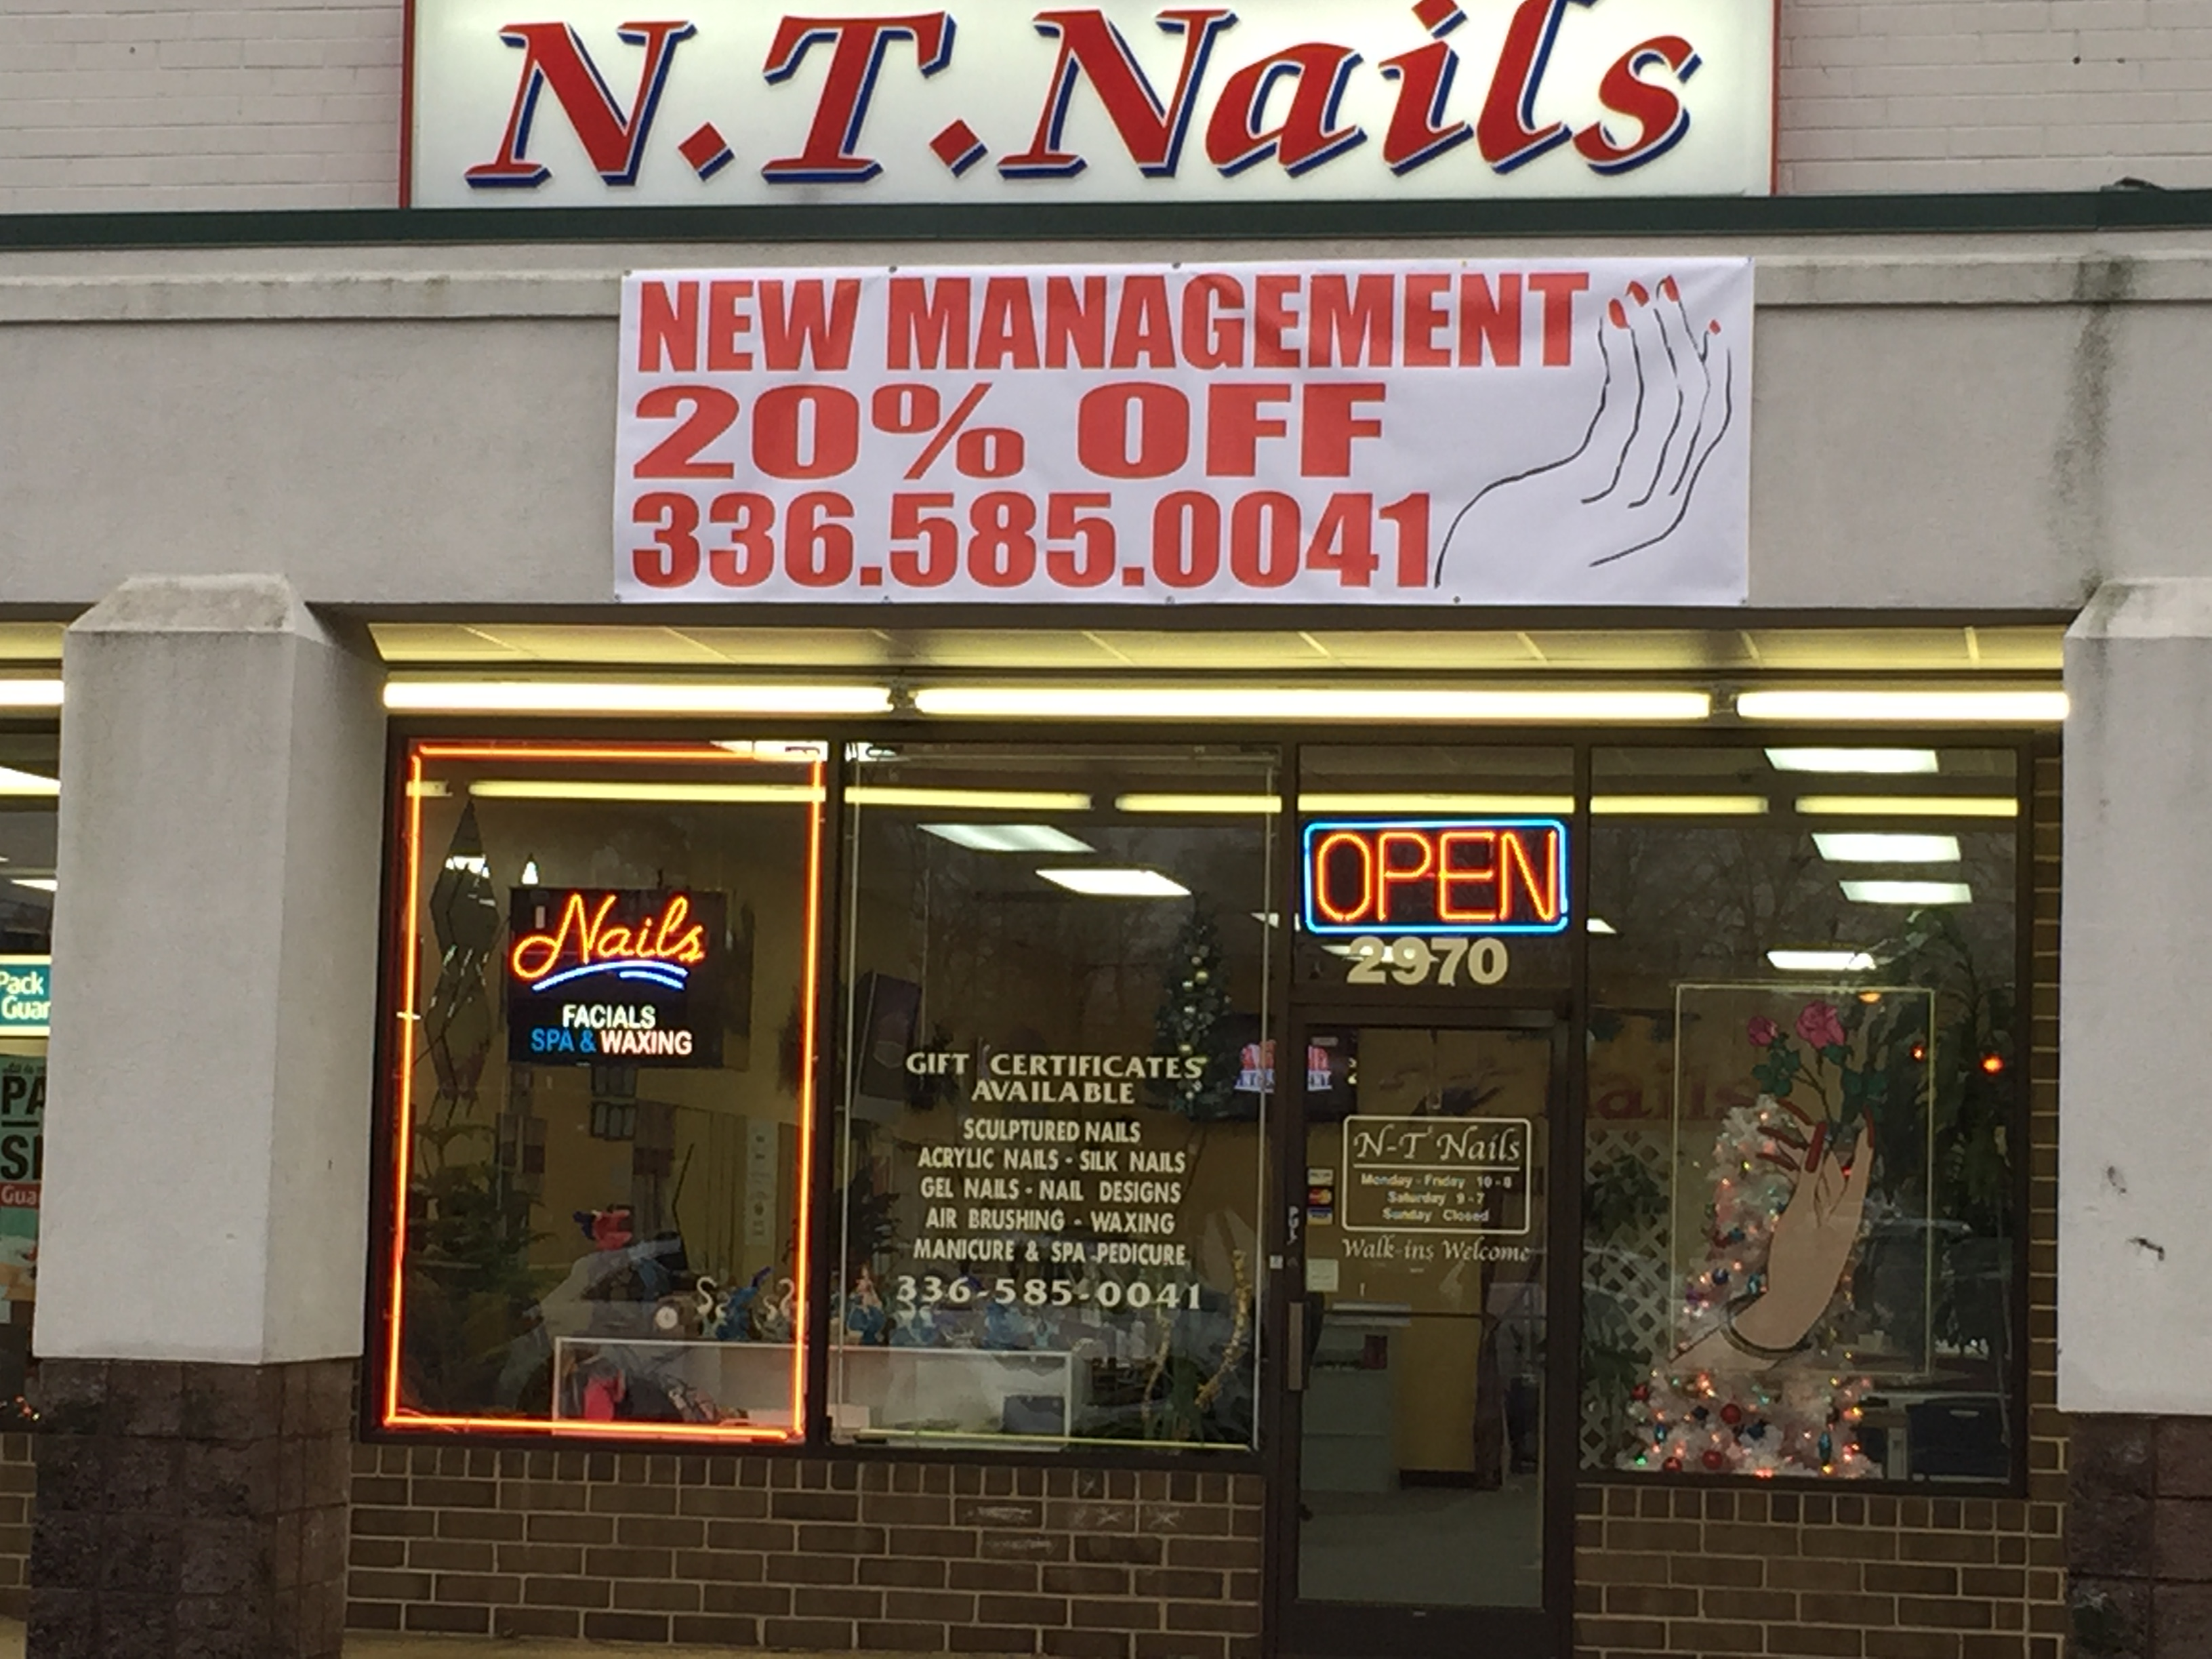 Nail Places Open Past 7 Near Me – Papillon Day Spa